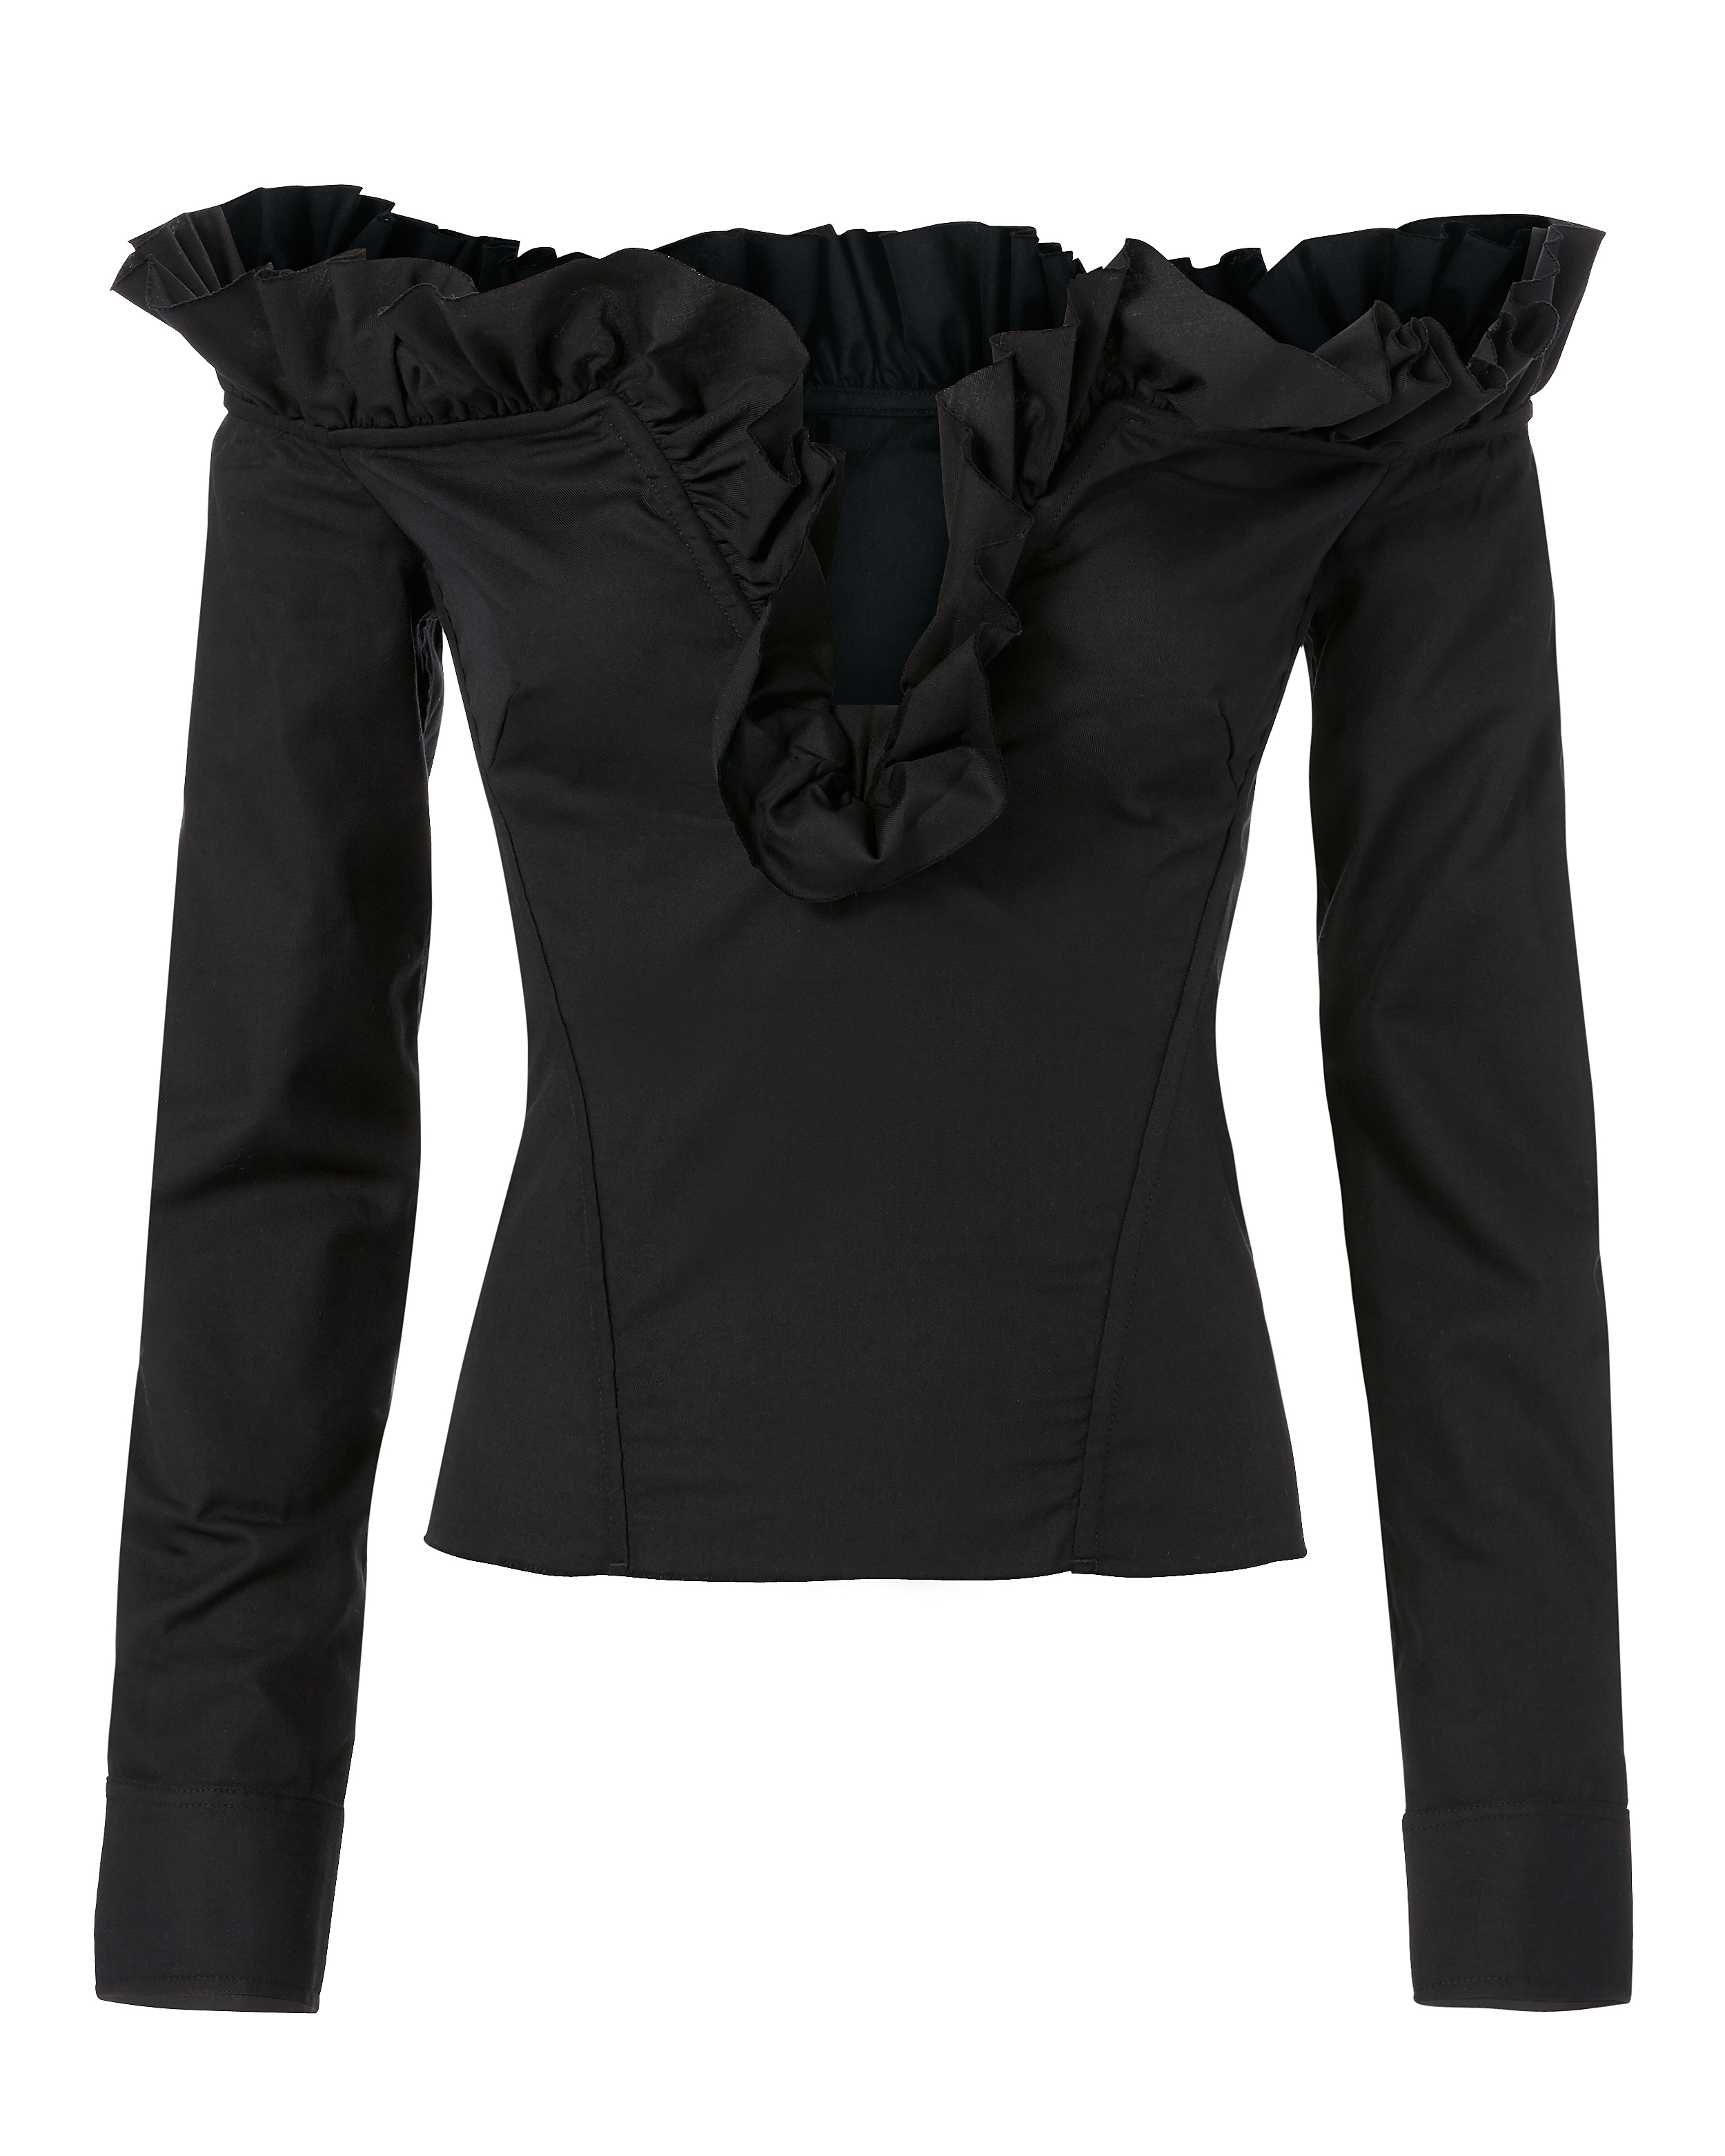 Corset Ruffle Top by Marques' Almeida